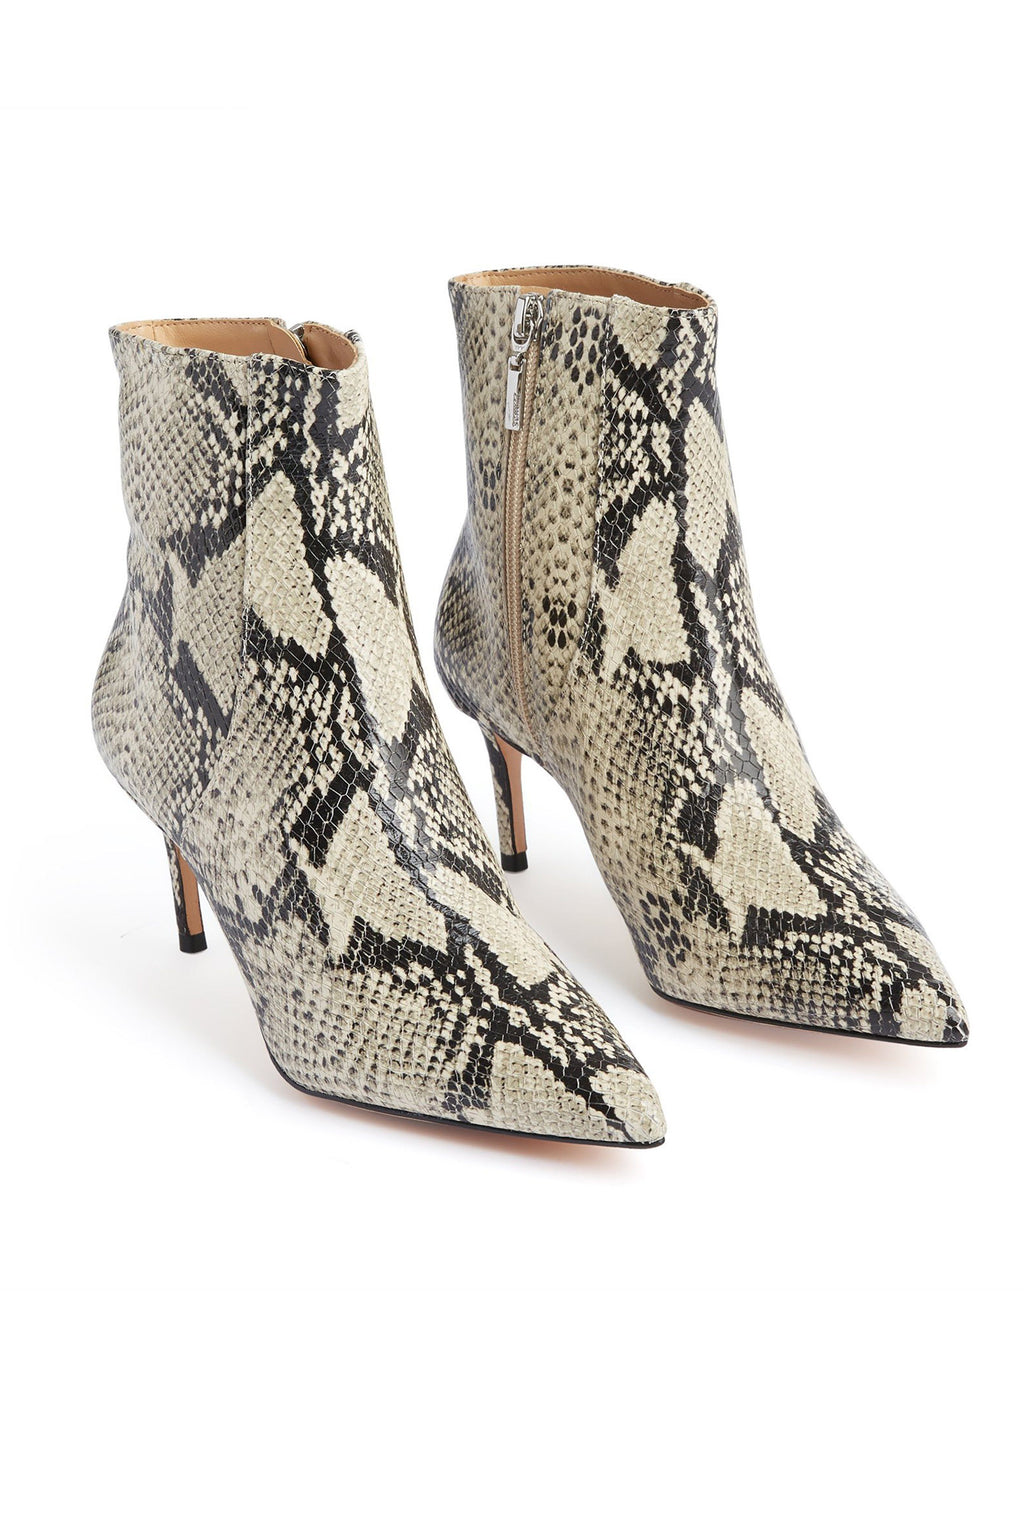 SCHUTZ | Bette Bootie - Natural Snake